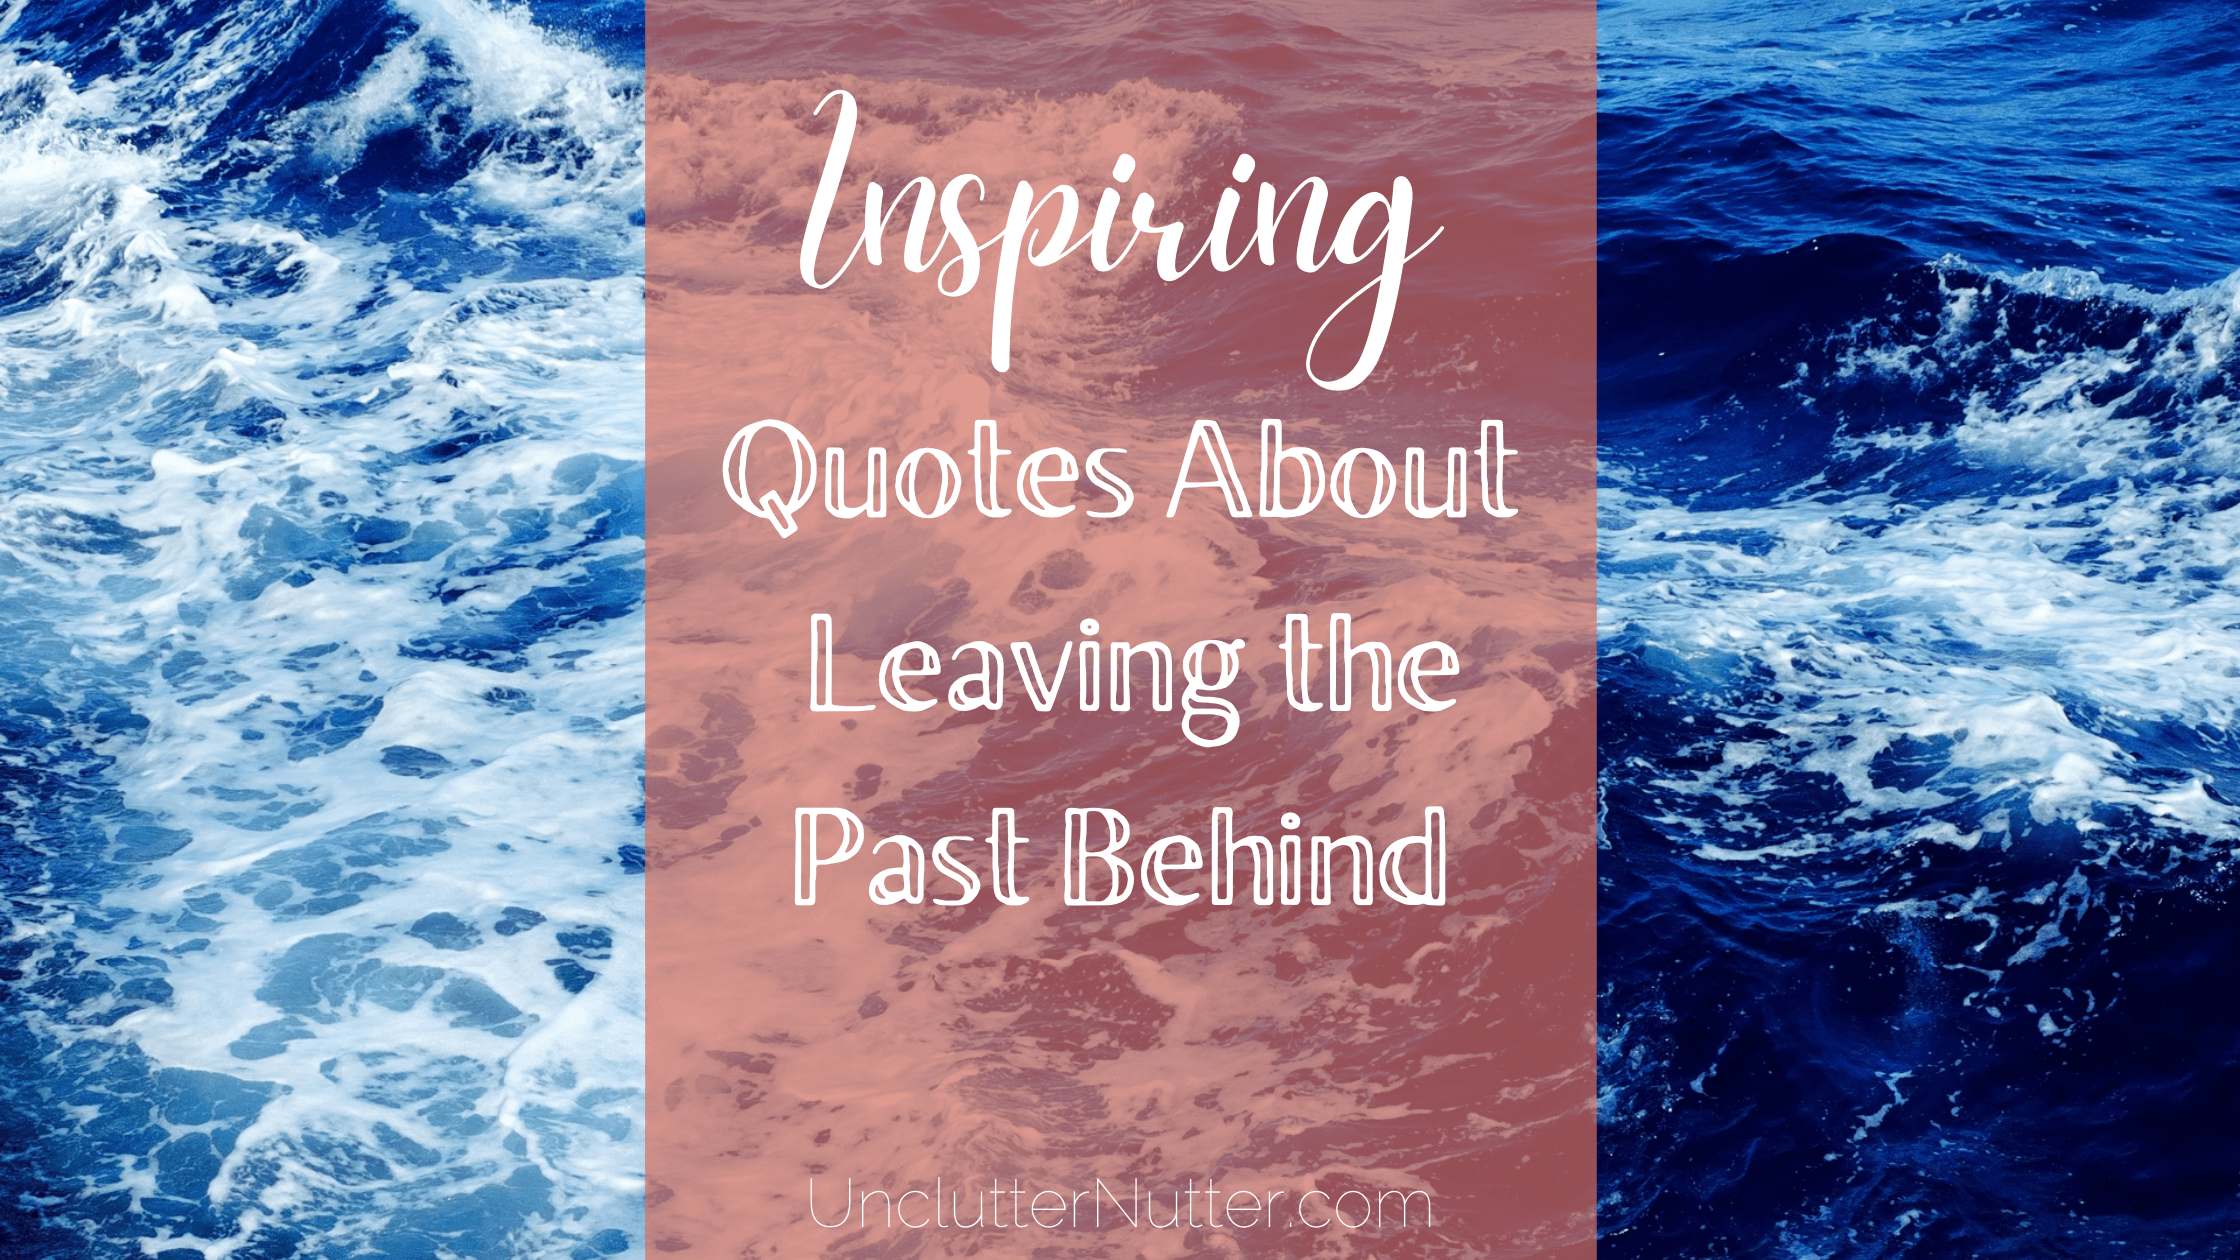 Inspiring quotes about leaving the past behind